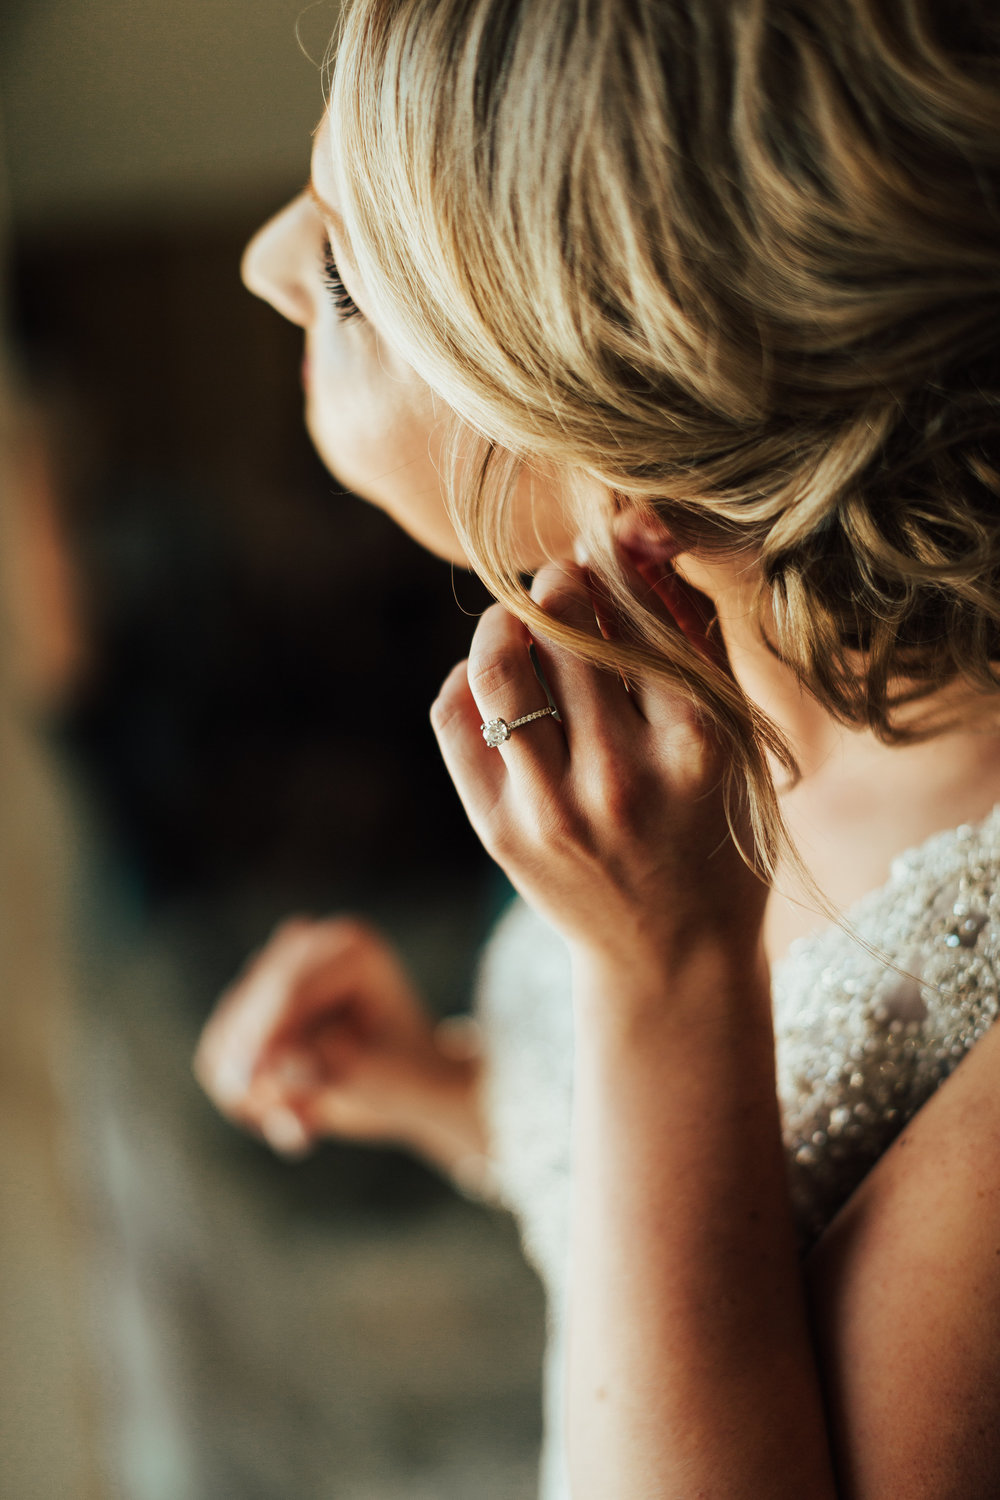 bride putting on earrings detail picture | Janelle Elise | Megan + Corey | Furber Farm | Sixpence Events | A Vintage Touch Weddings56.jpg